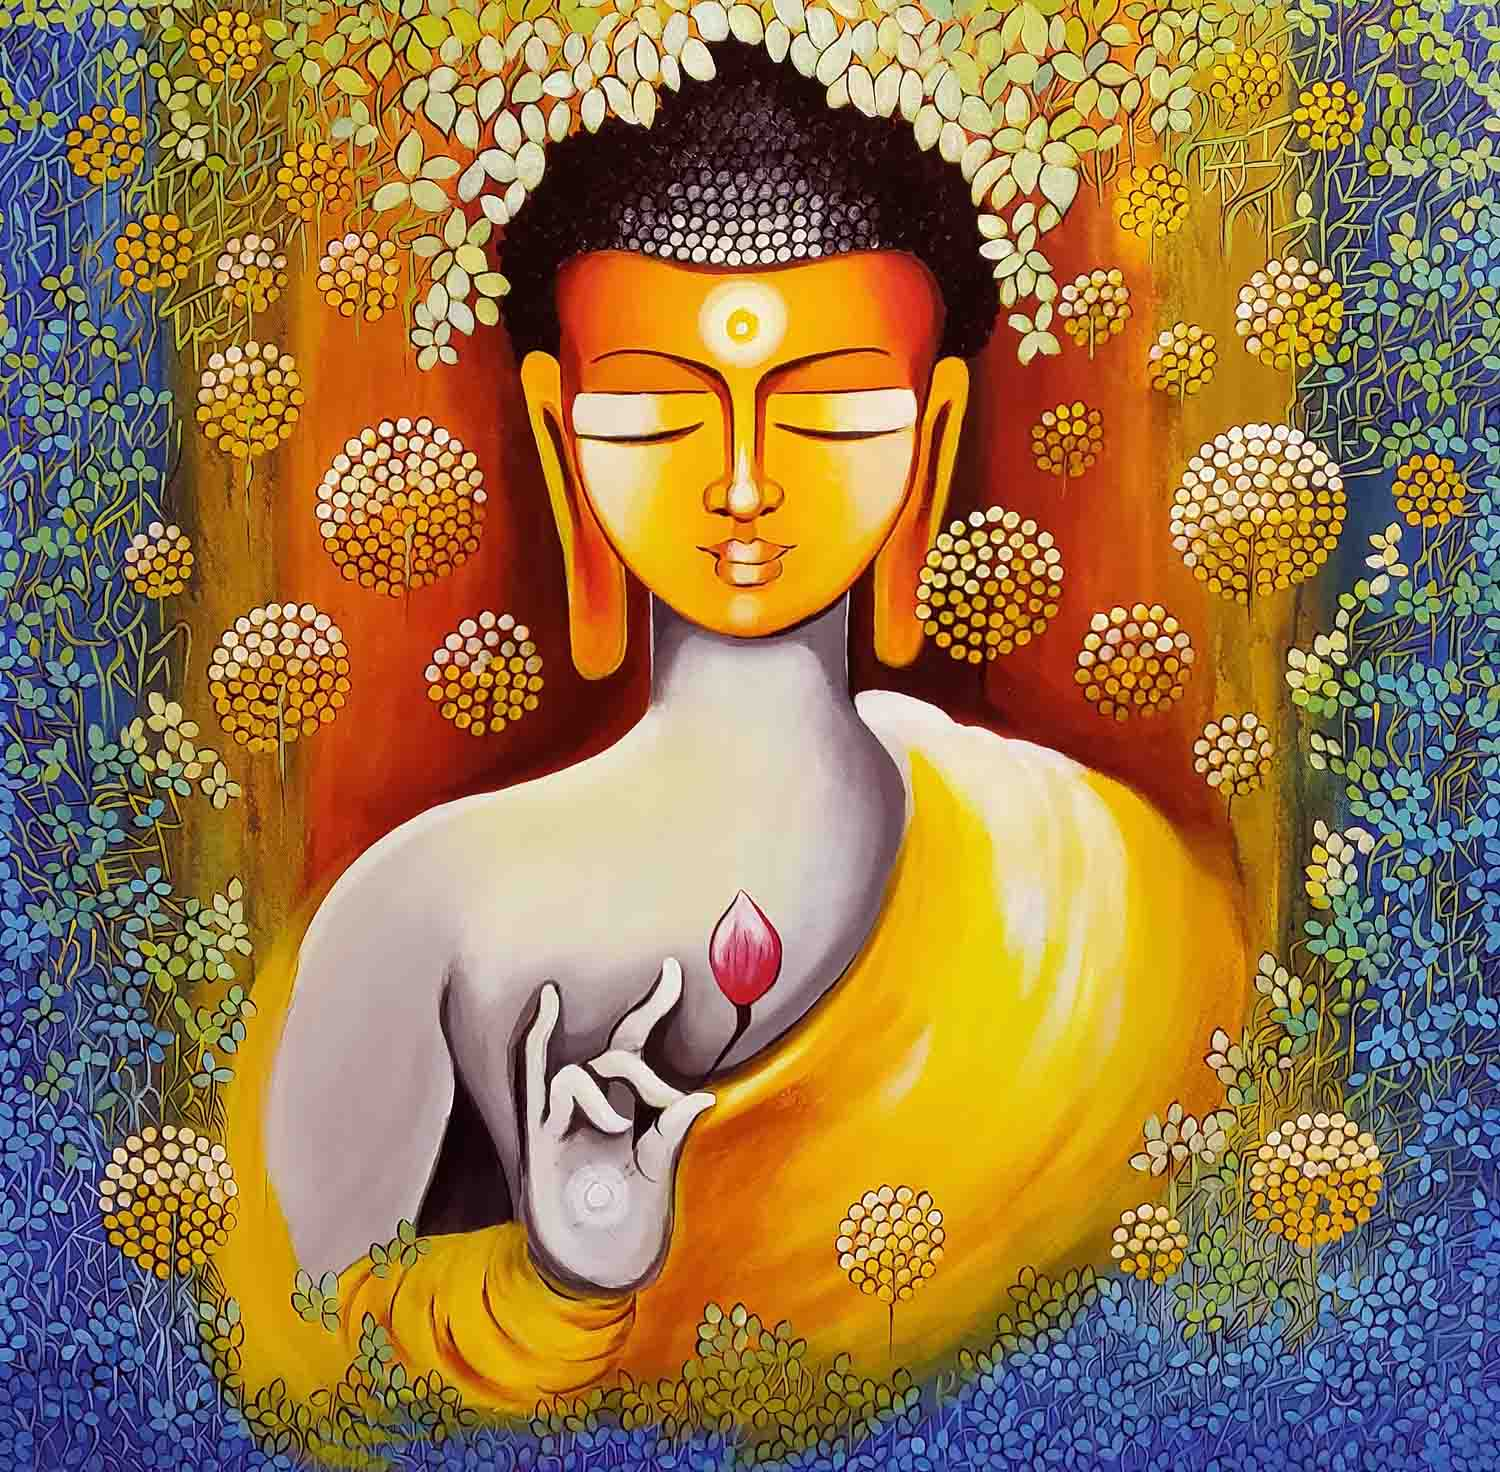 BUDDHA - PEACE BEGINS WITH SElf LOVE 15404